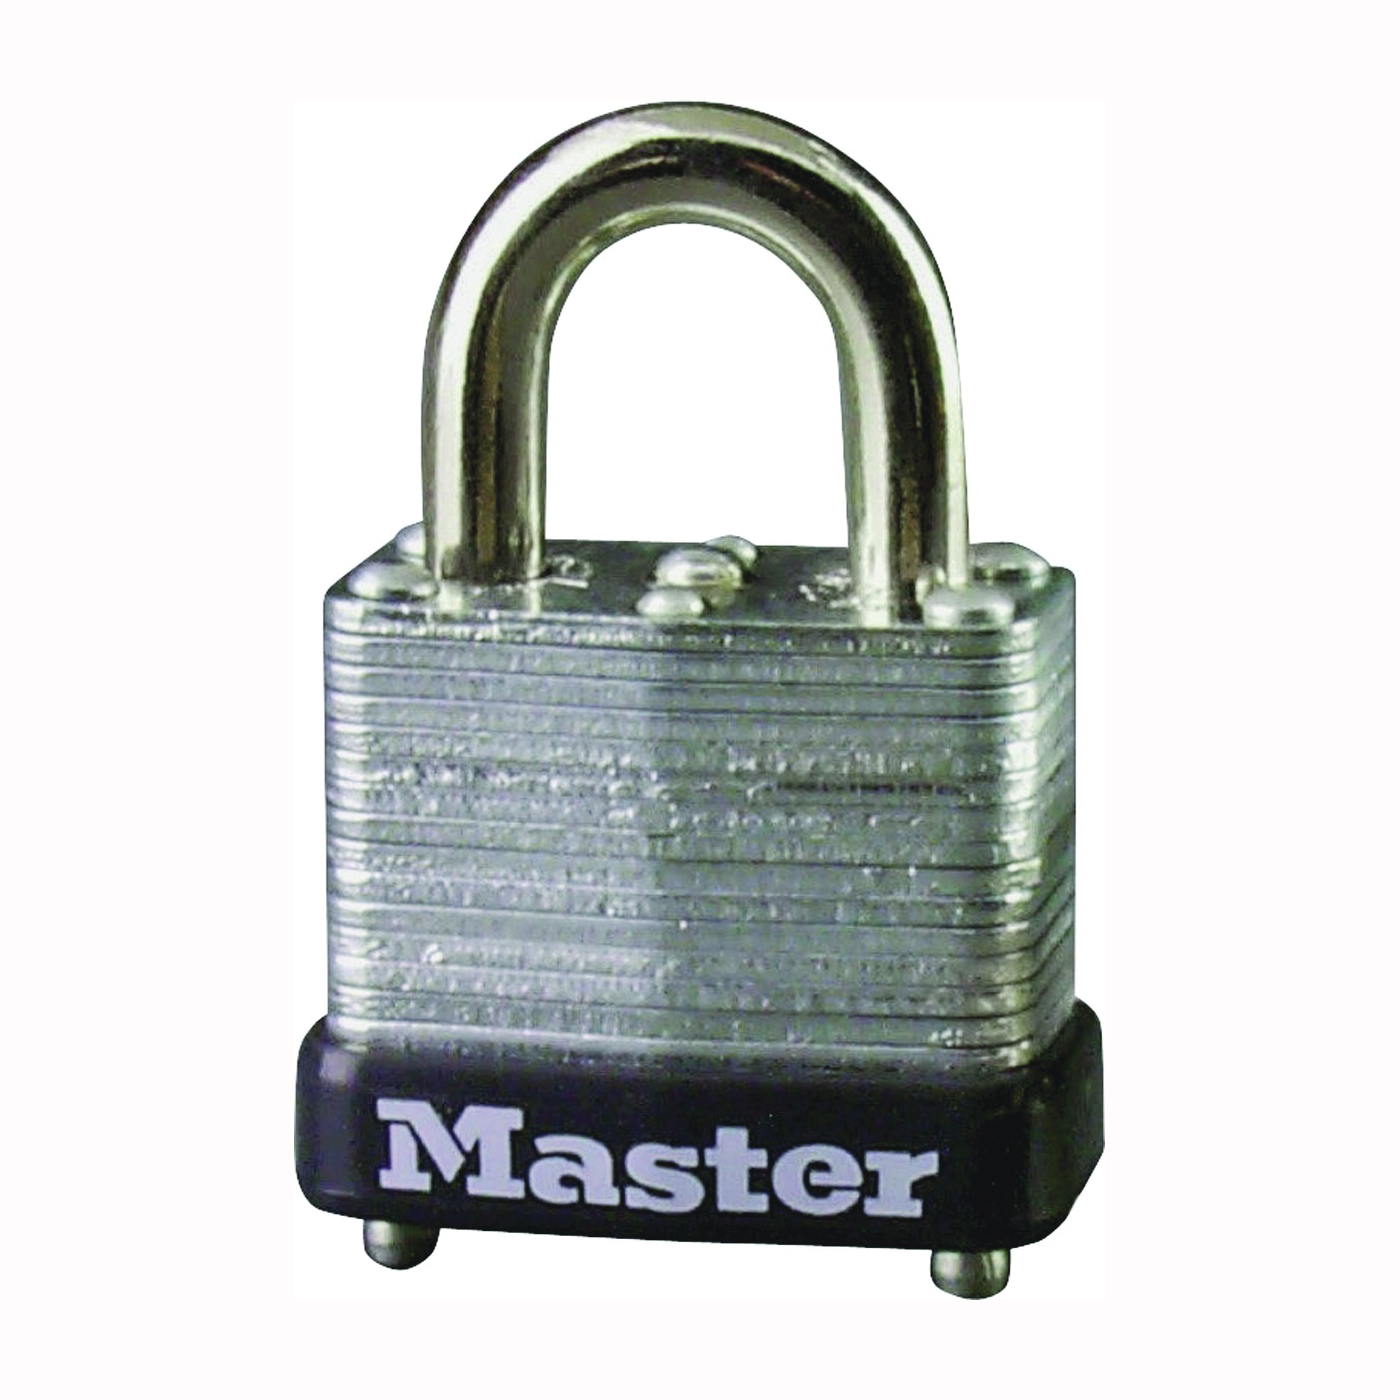 Picture of Master Lock 10D Padlock, Keyed Different Key, 5/32 in Dia Shackle, Steel Shackle, Steel Body, 1 in W Body